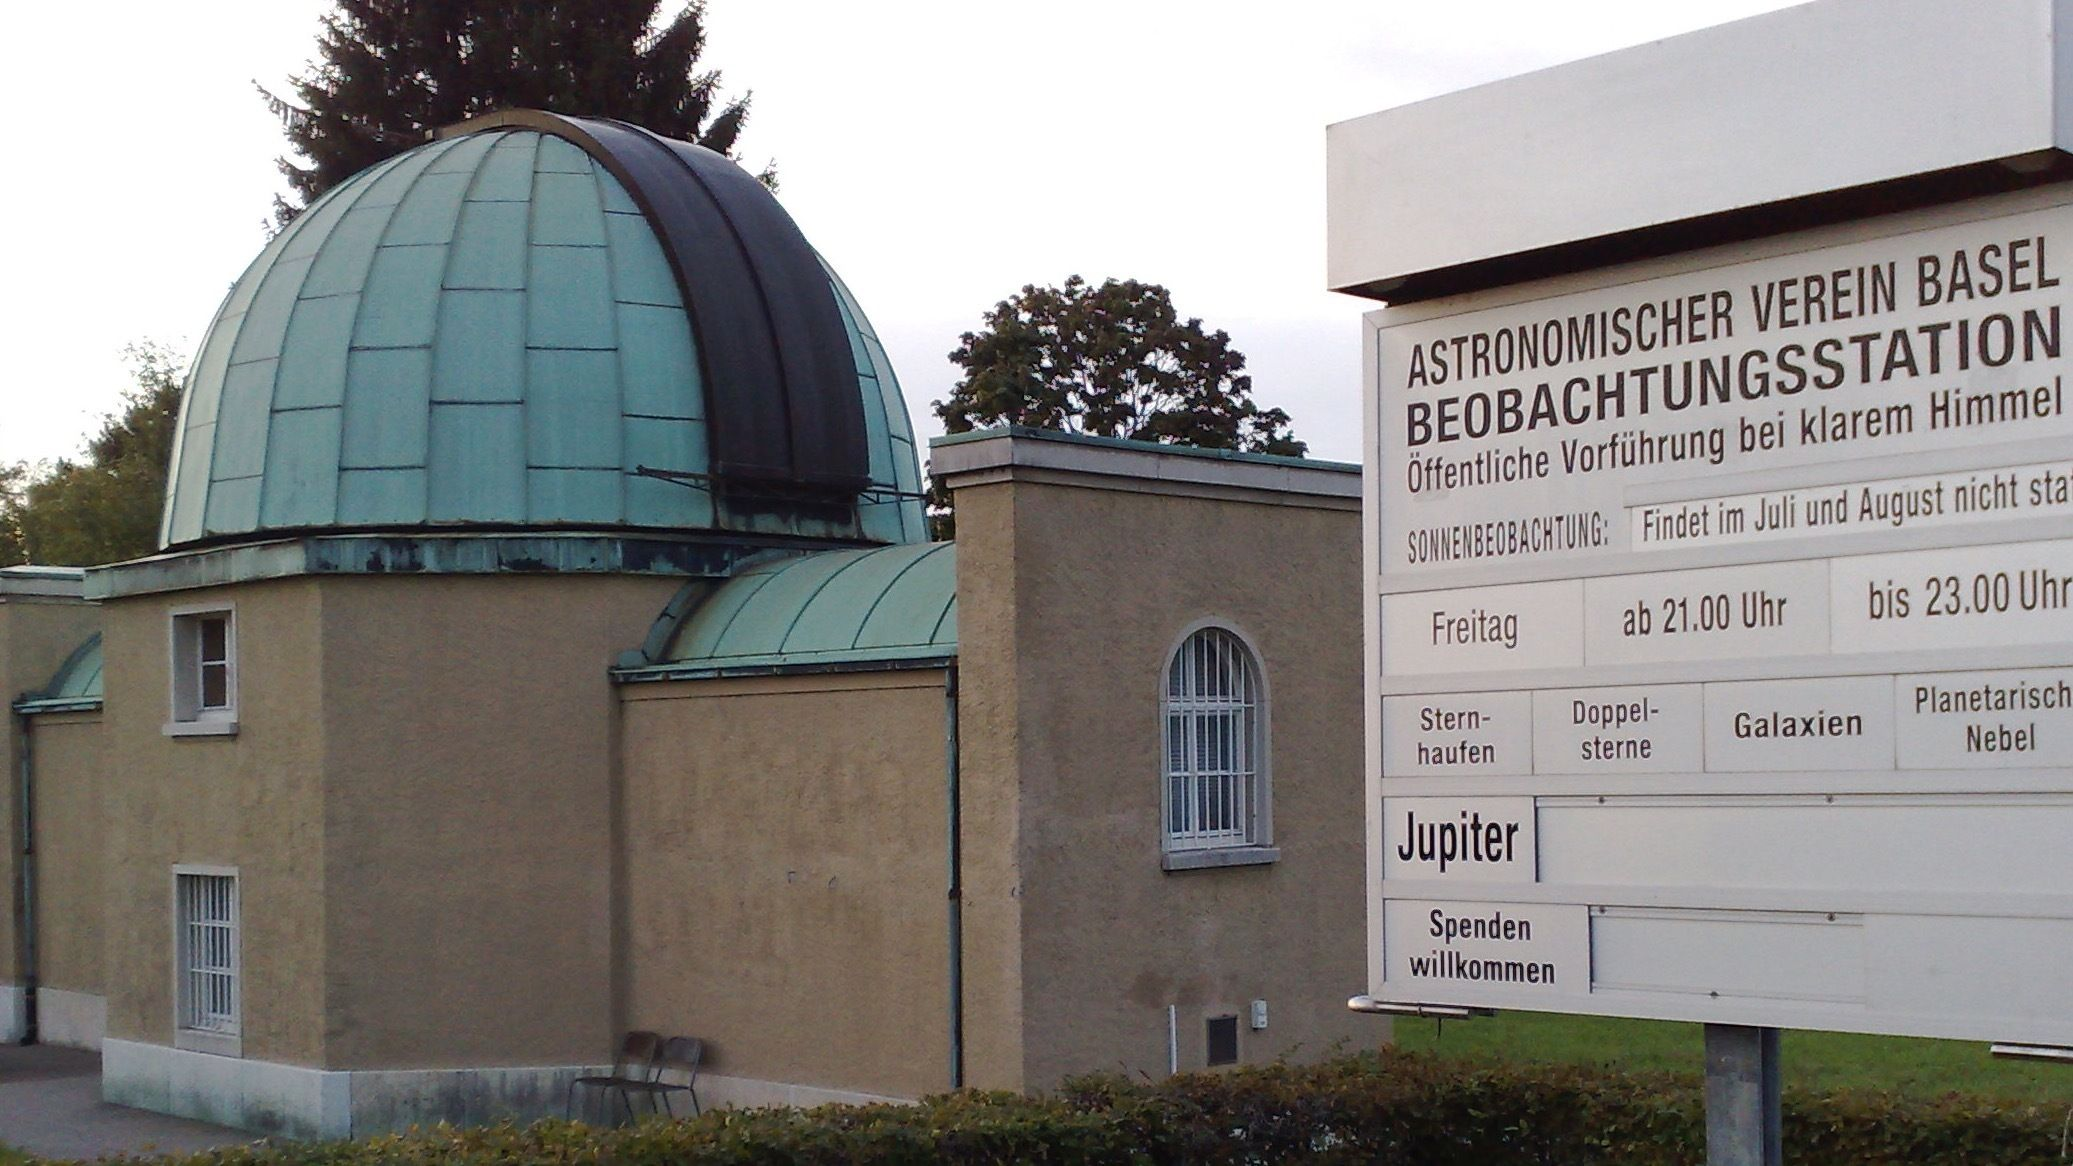 Visit to the observatory